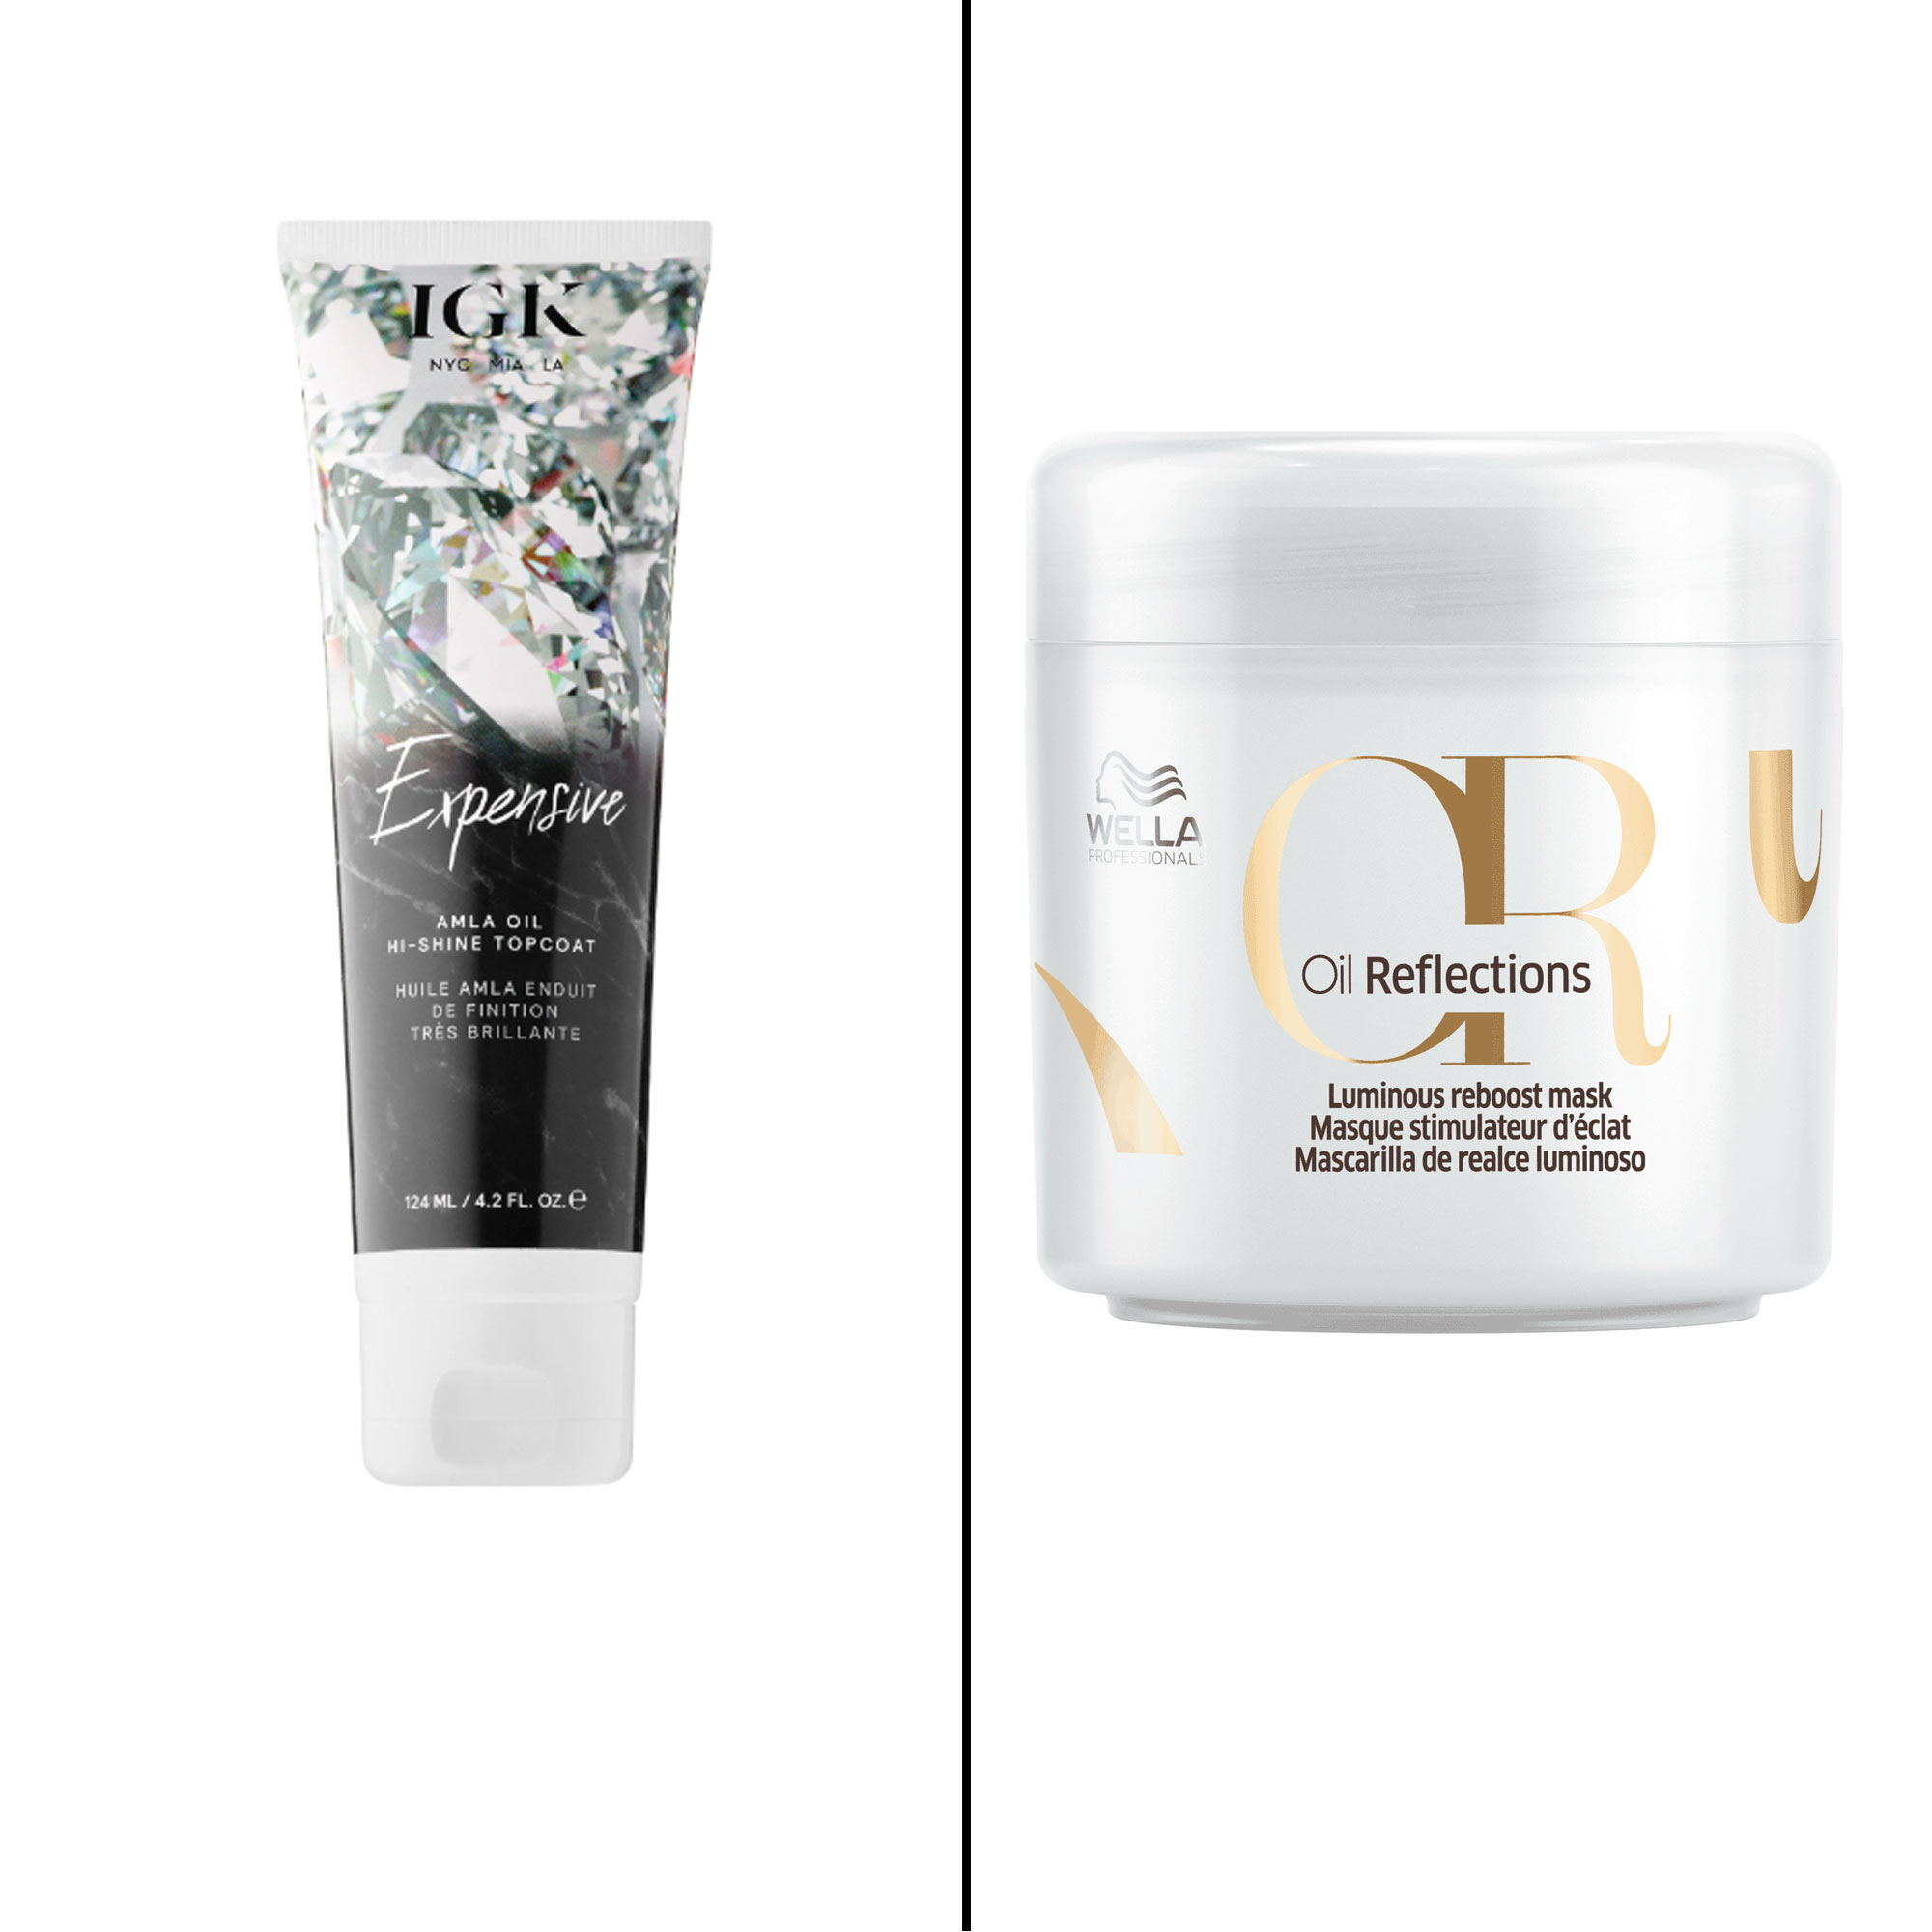 Splurge vs. Save: Salon-Worthy Hair Treatments For Every Type of Need - Splurge: IGK Expensive Amla Oil Hi-Shine Topcoat This in-shower gloss delivers a high-level of shine that's so bright it will likely turn heads. $29, sephora.com Save: Wella Oil Reflections Luminous Reboost Mask Made with camellia seed oil and white tea extract, this mask gives hair serious levels of radiance.